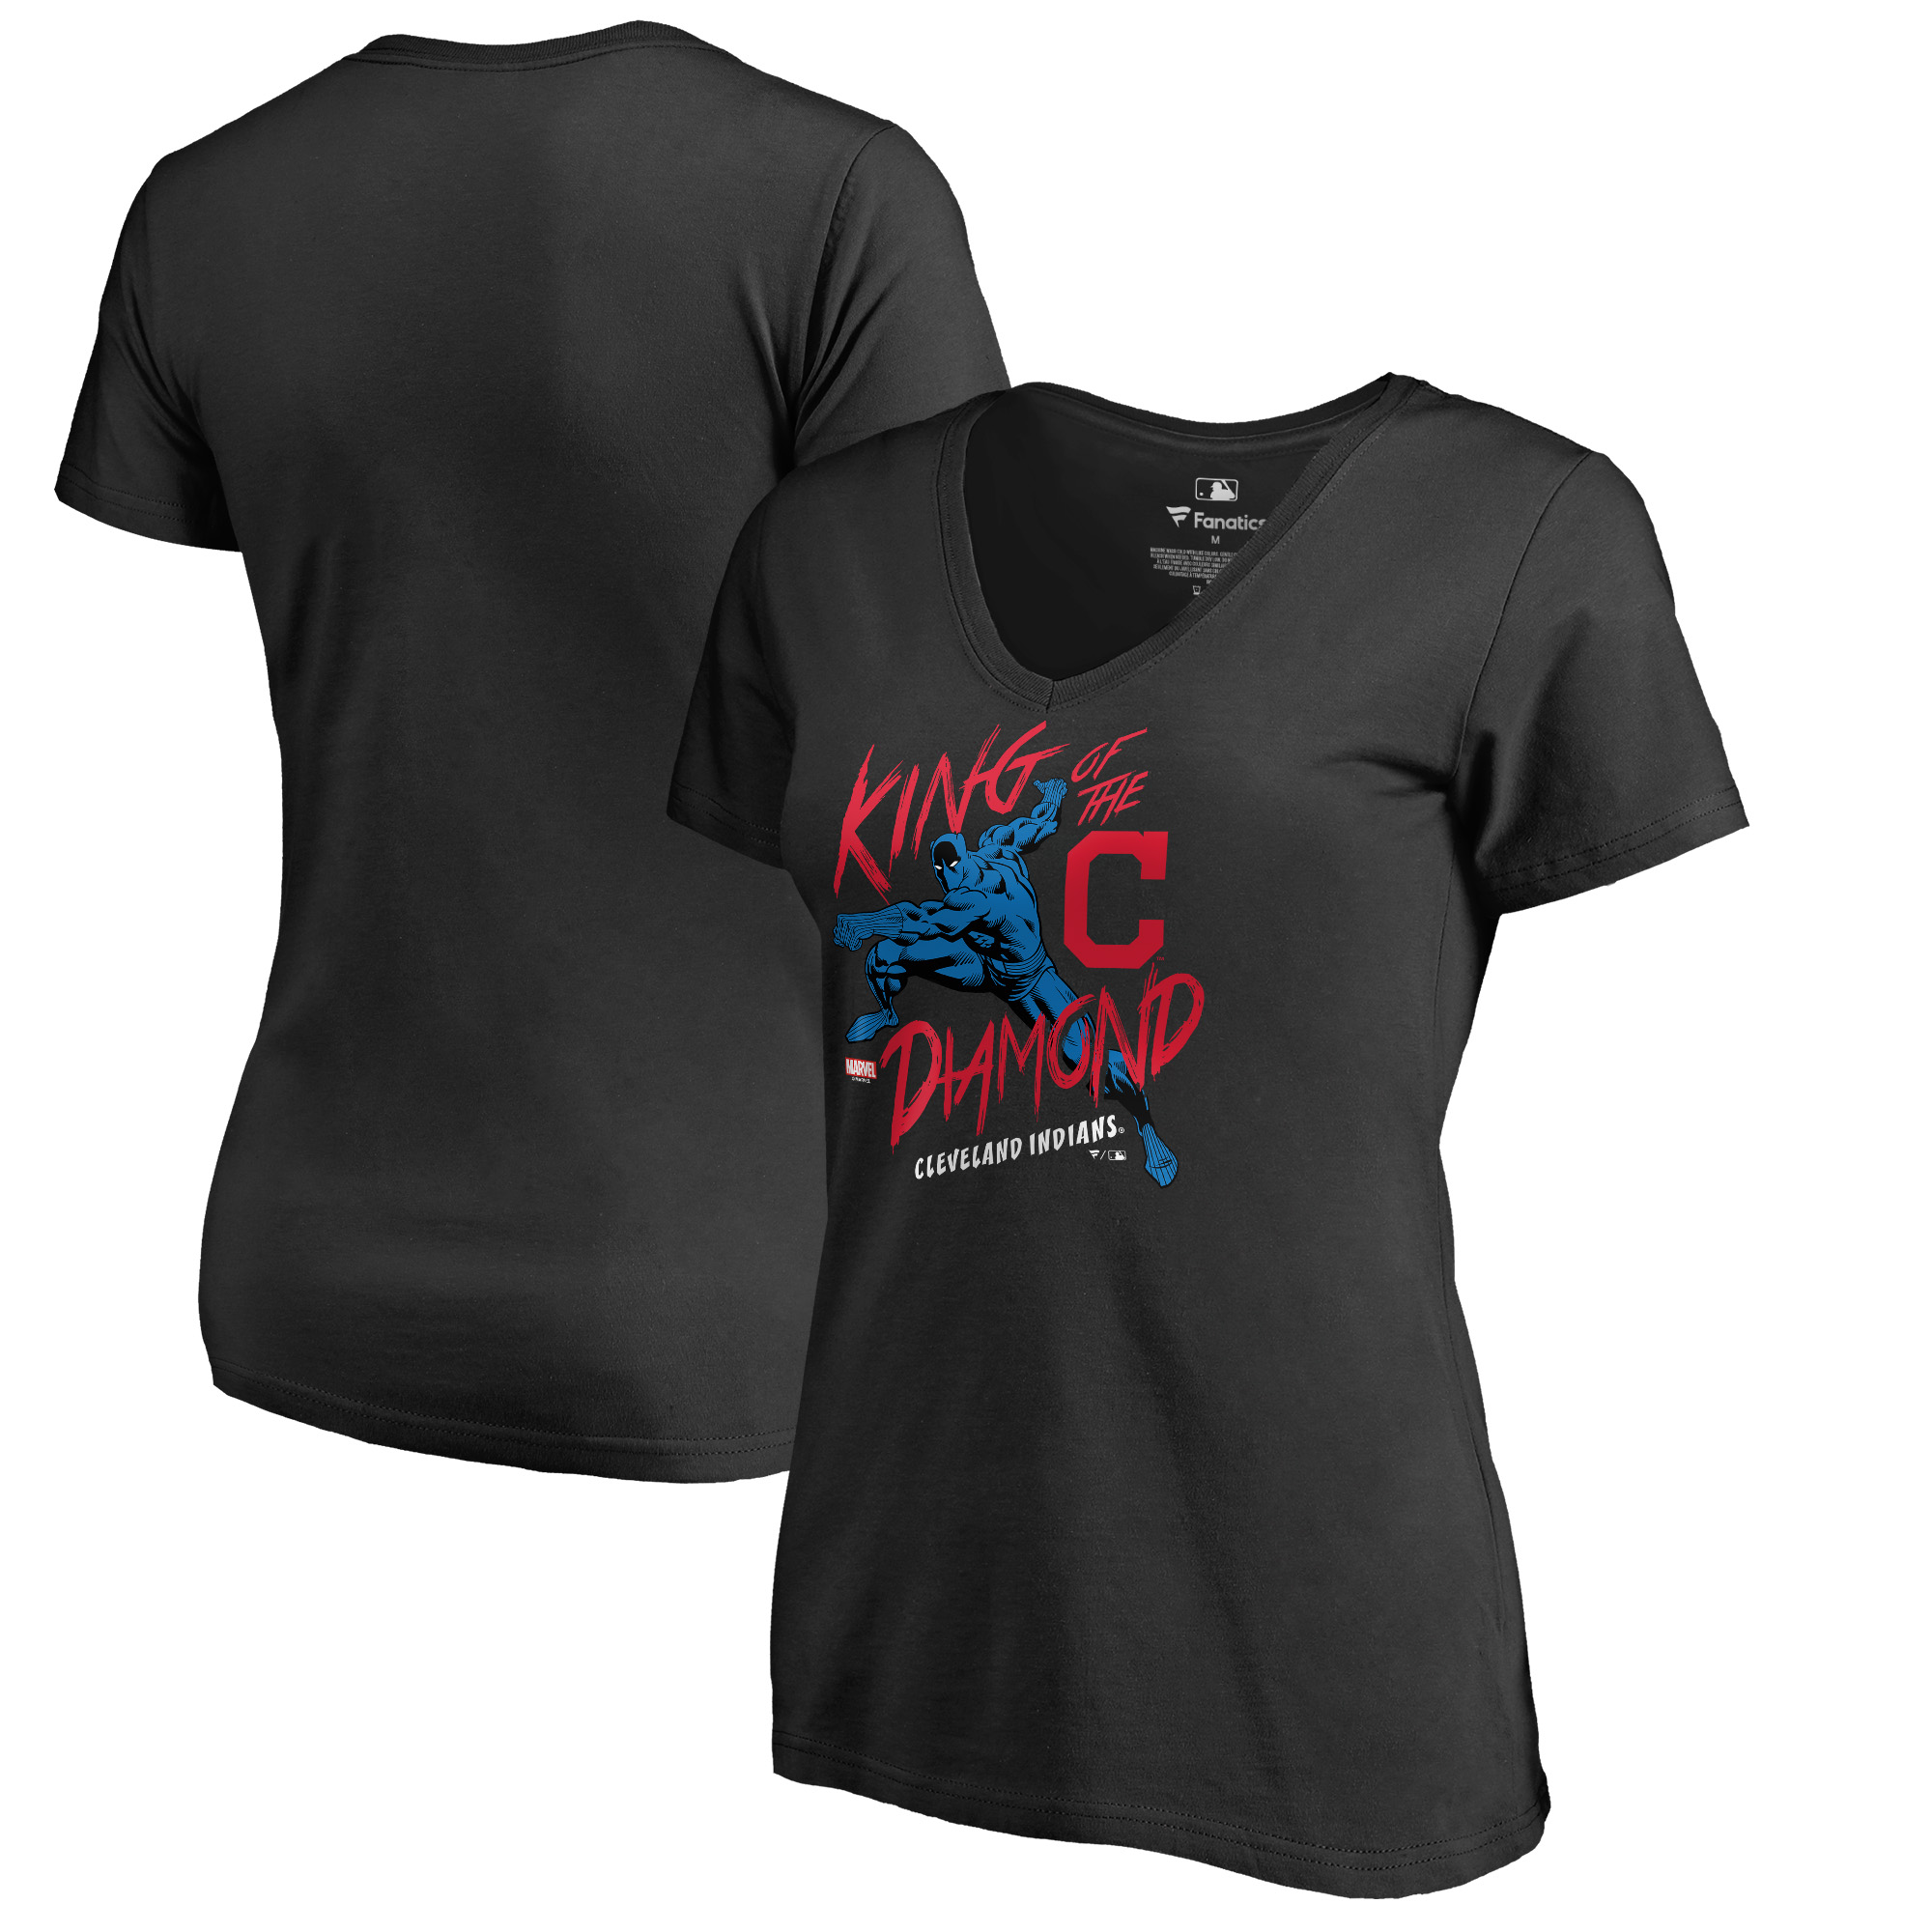 Cleveland Indians Fanatics Branded Women's MLB Marvel Black Panther King of the Diamond V-Neck T-Shirt - Black